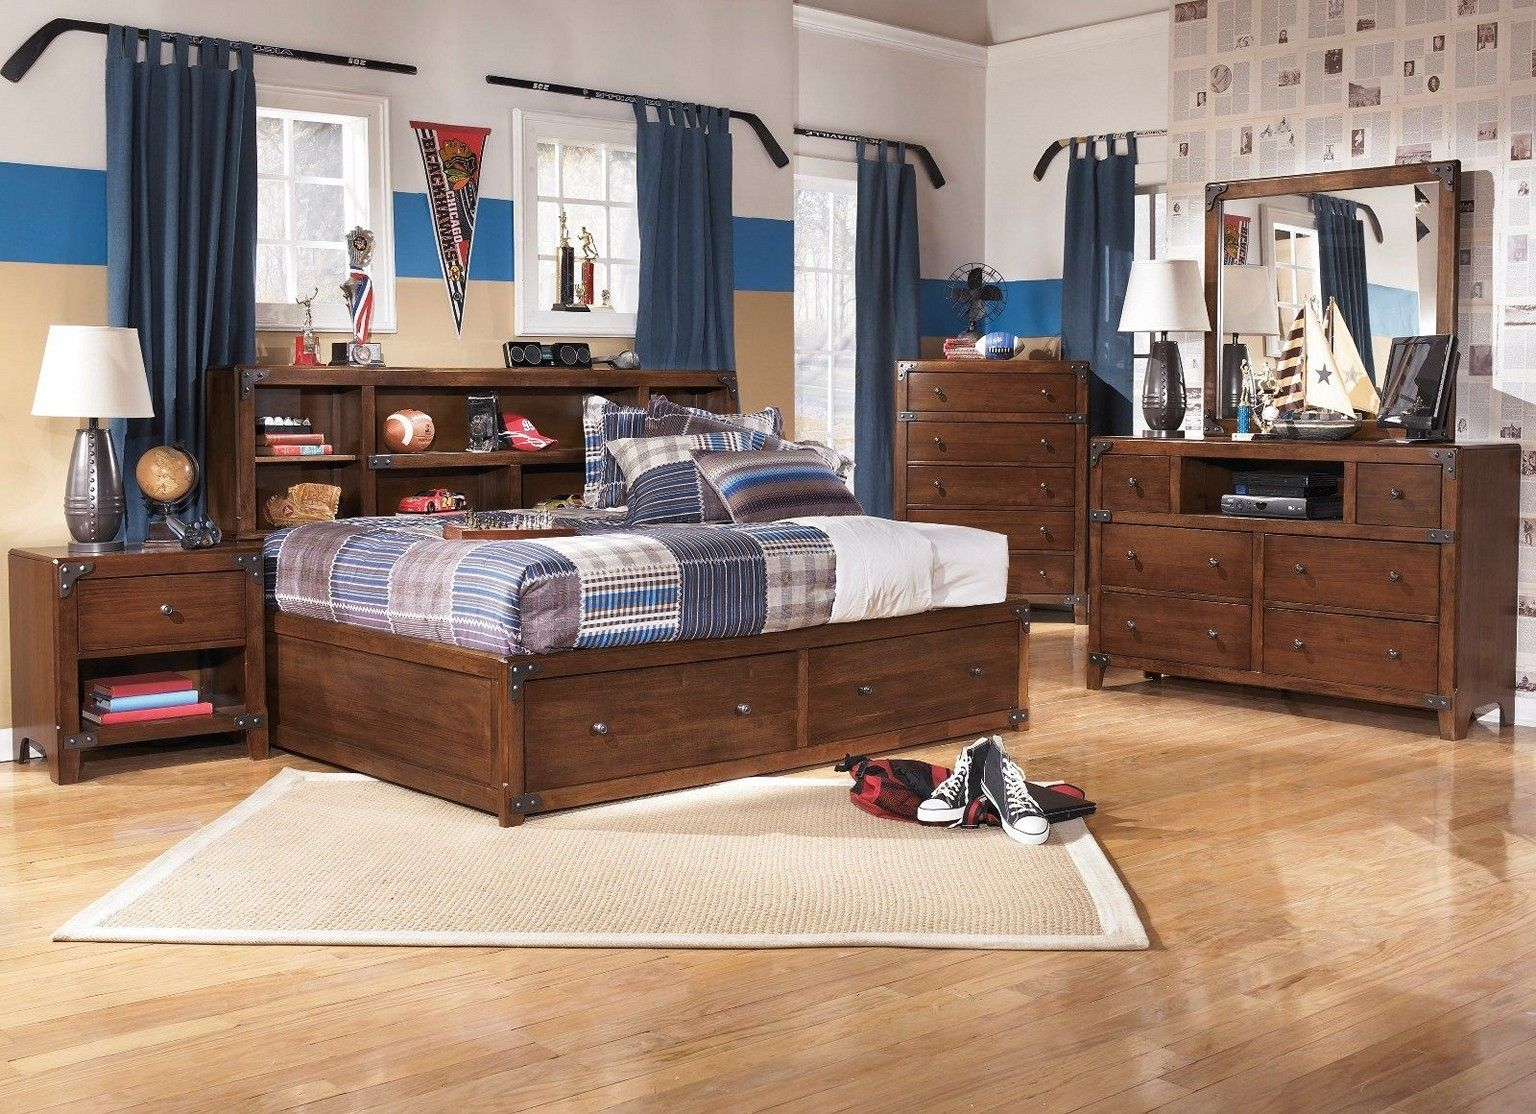 Teen boys bedroom ideas for the true comfortable paint bedrooms home